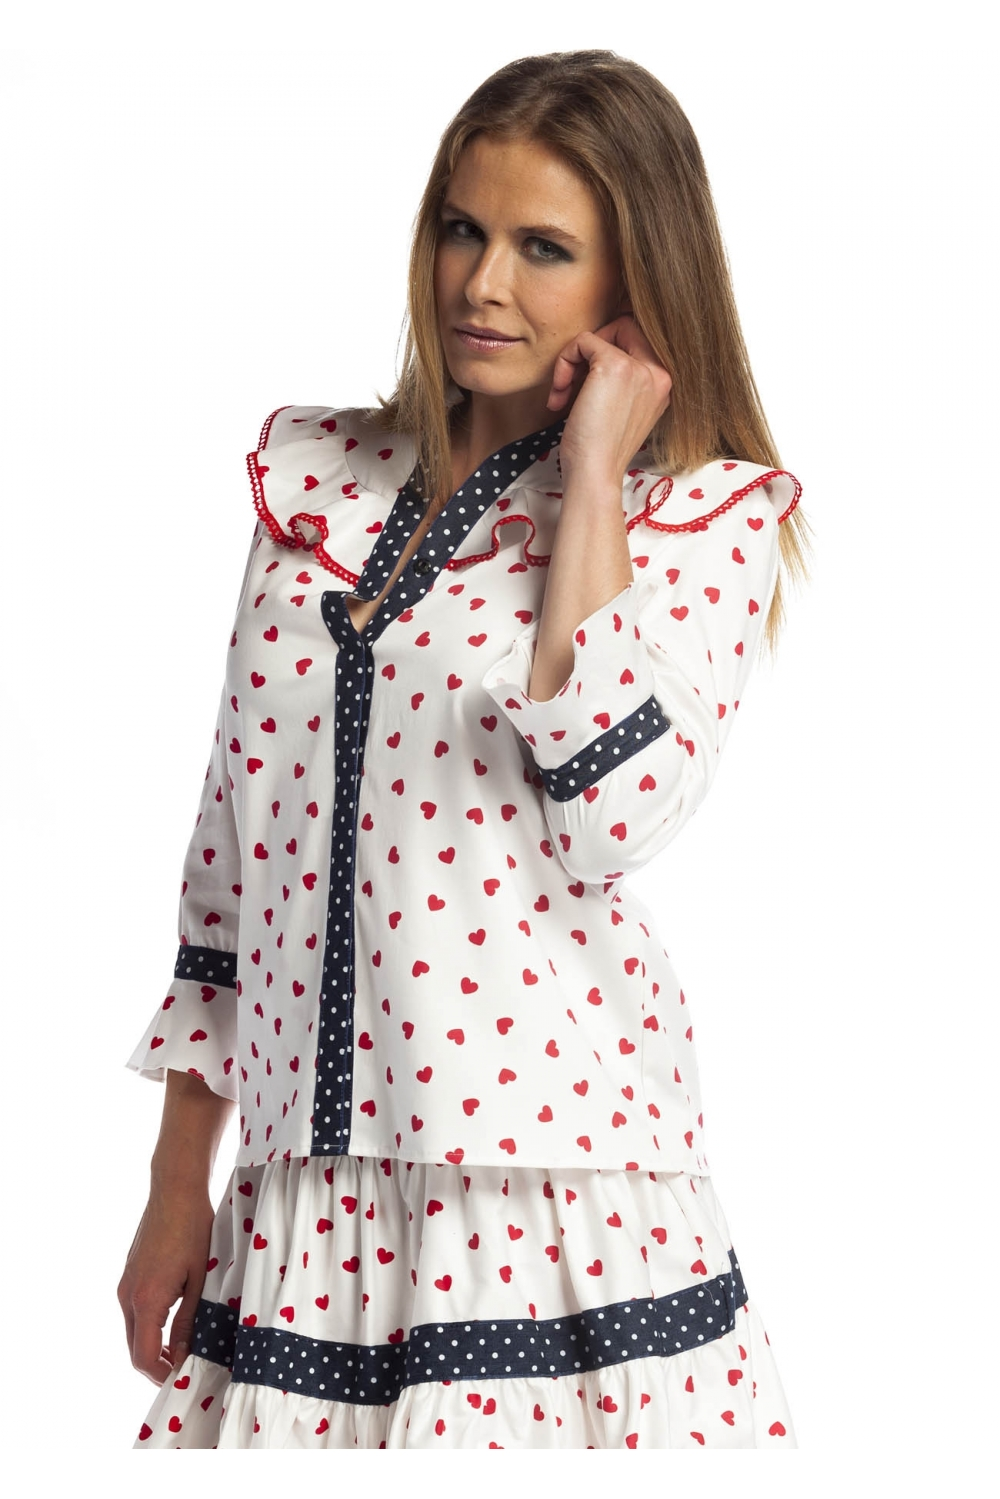 b549d460702 White blouse with a French sleeve. It has ruffles